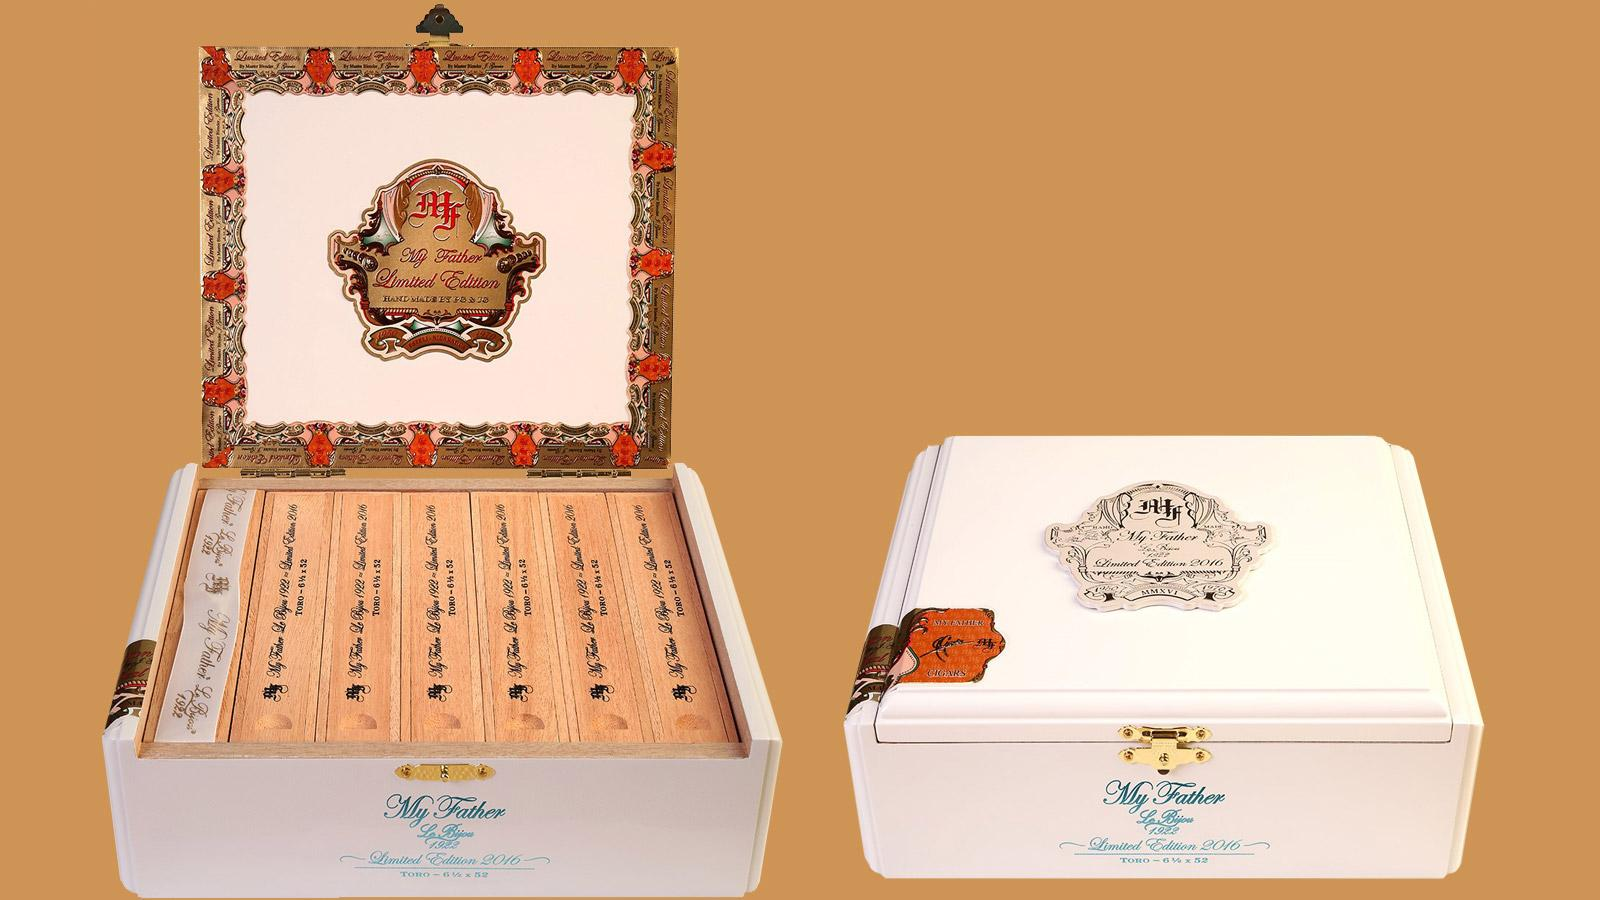 My Father Le Bijou Limited Edition Ships Next Week